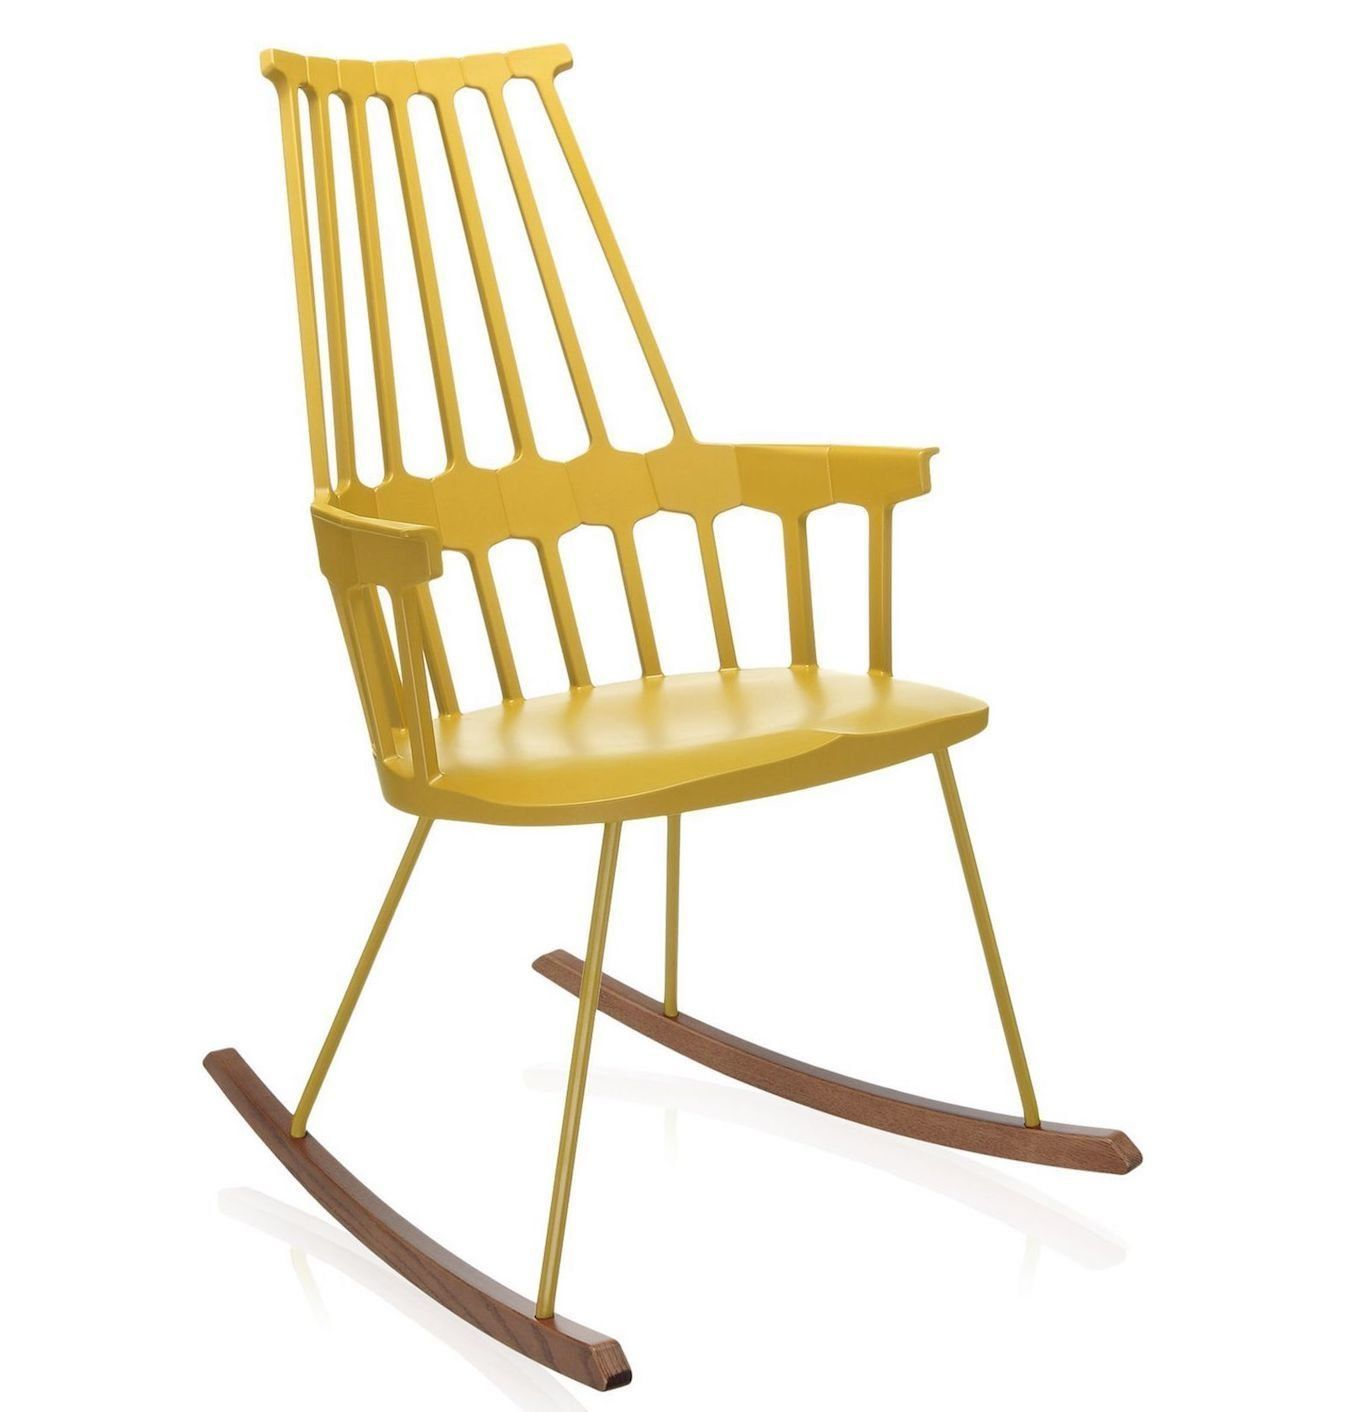 1350x1412 Kartell Comback Rocking Chair By Yliving Patricia Urquiola